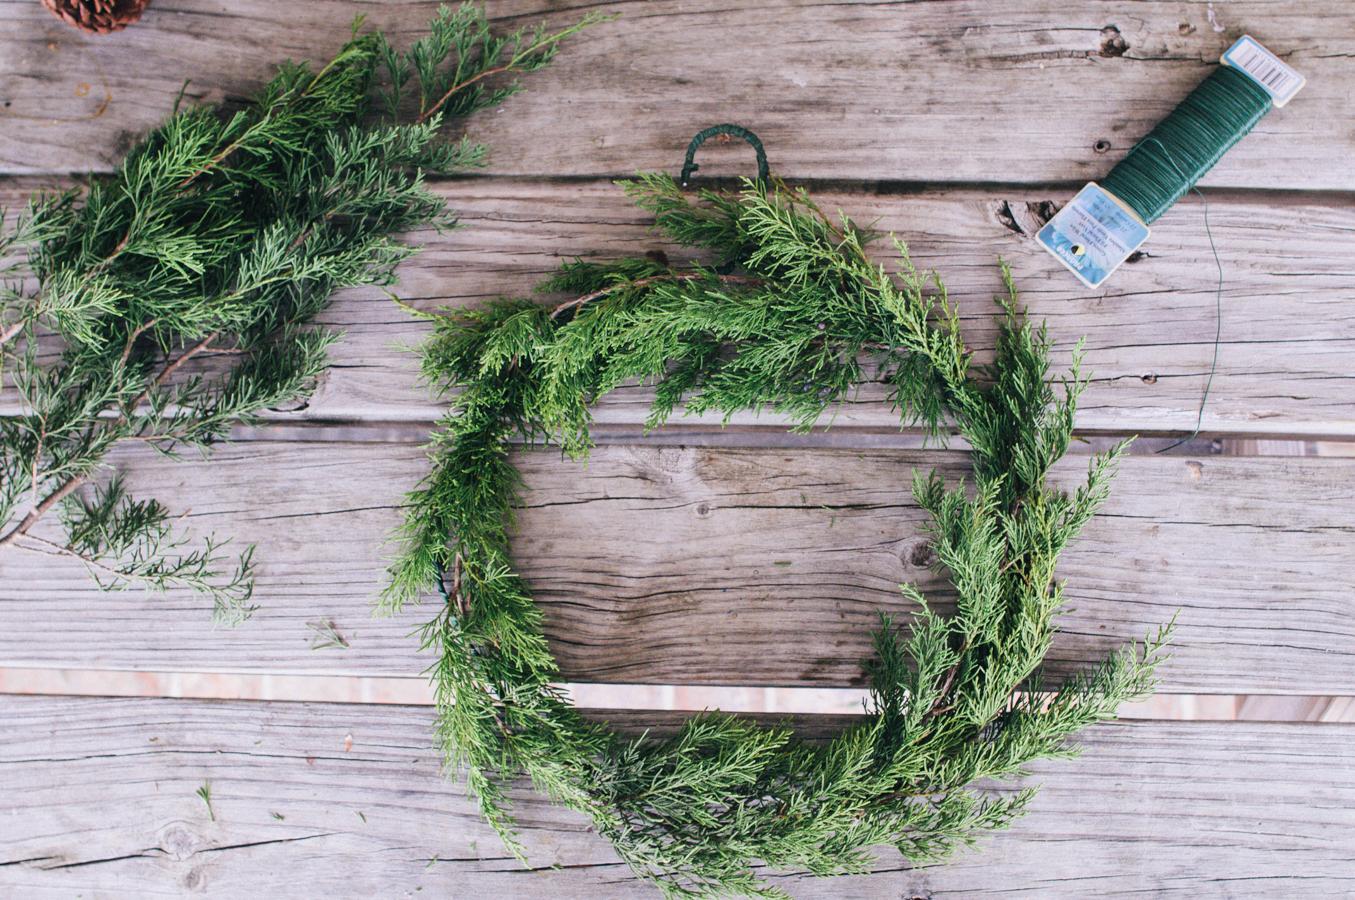 DIY_WREATH-12